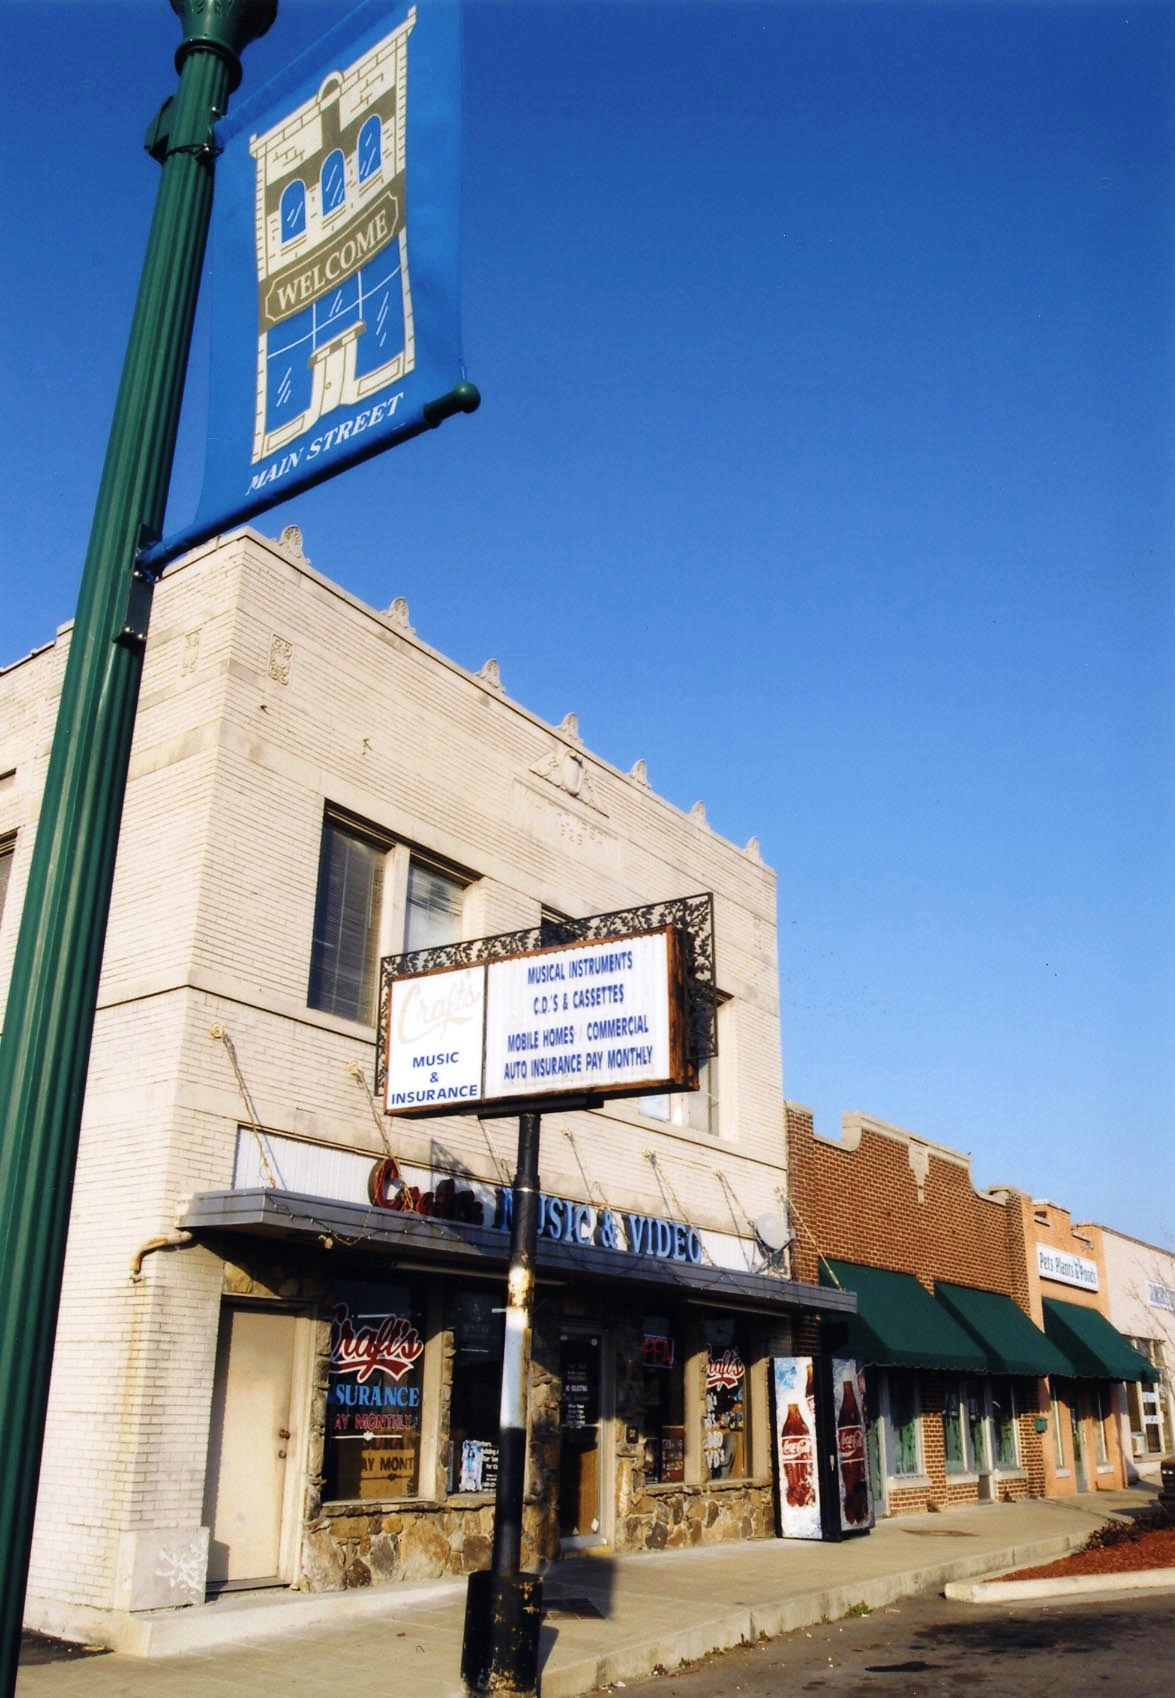 The 400 block of East Broadway in historic downtown West Memphis, Arkansas